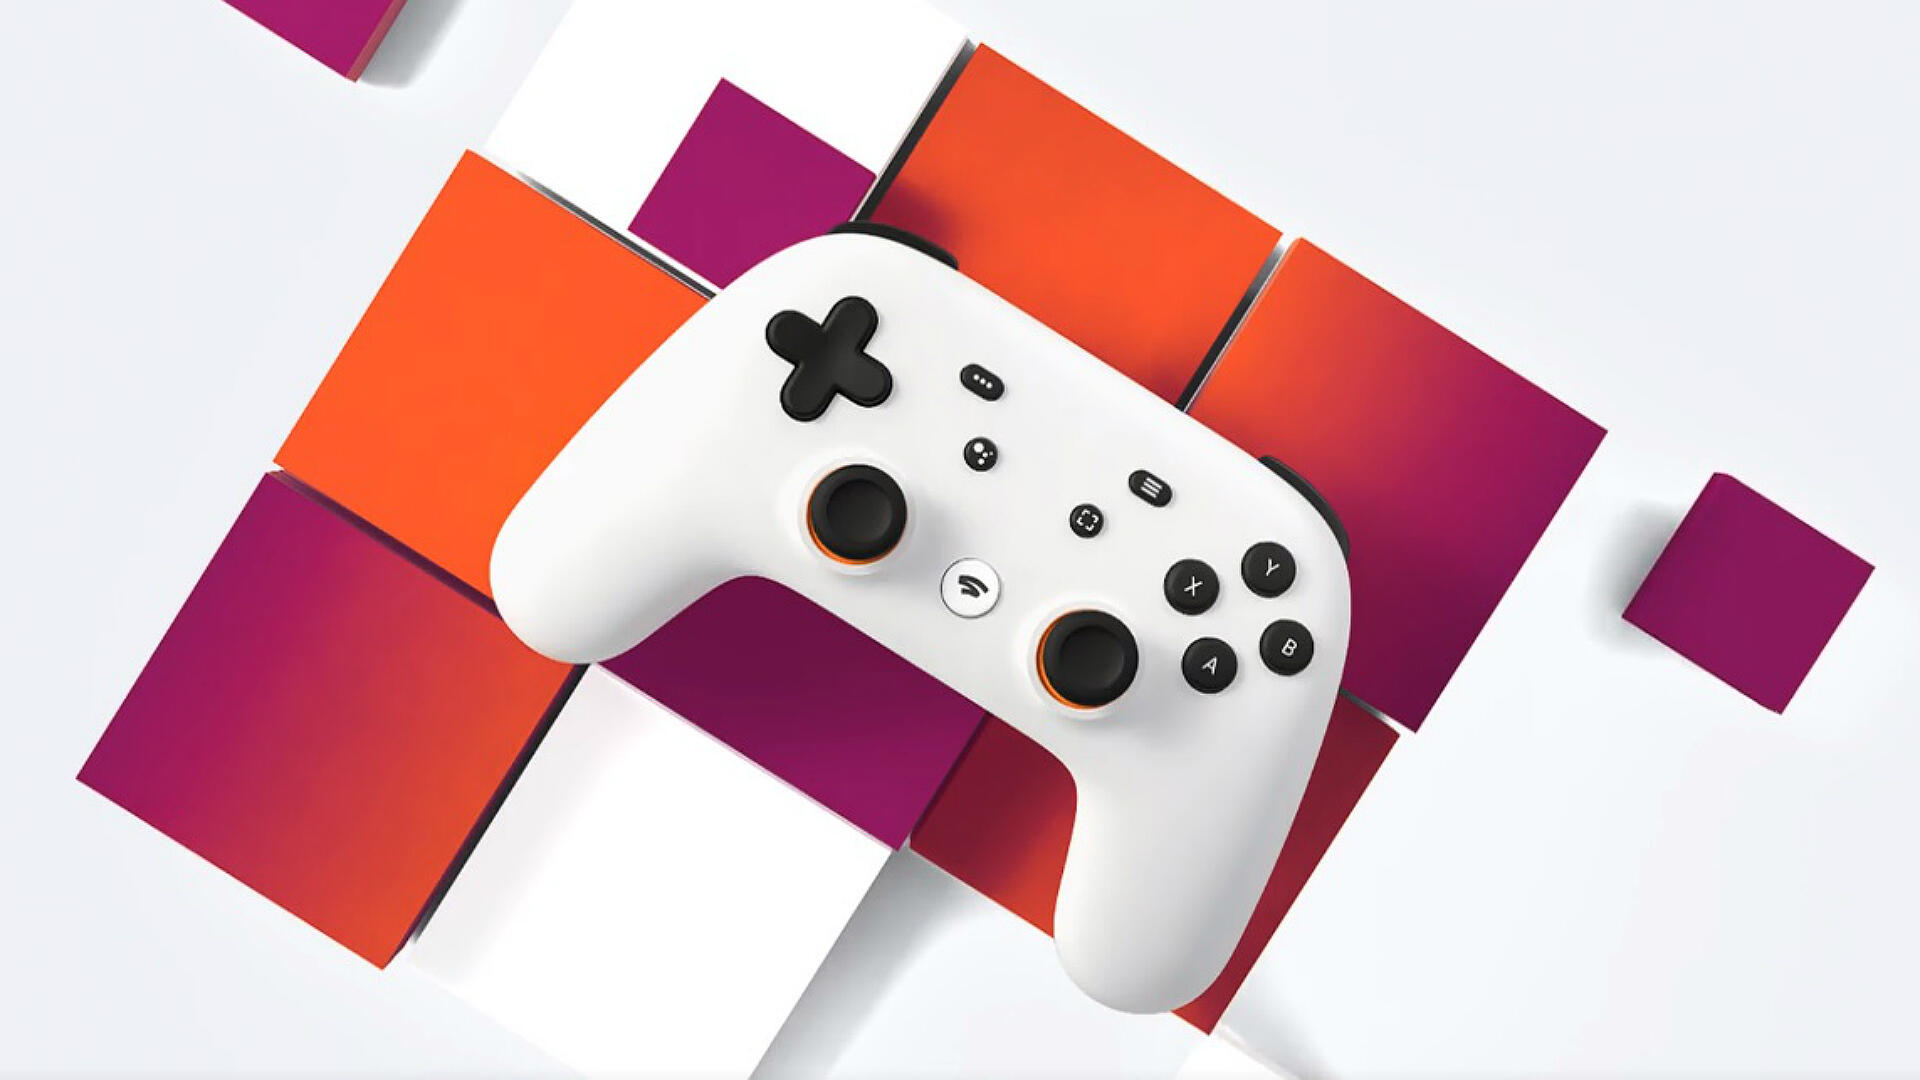 Google Stadia Interview: Discussing Safety, Price, and Internet Connection Speeds